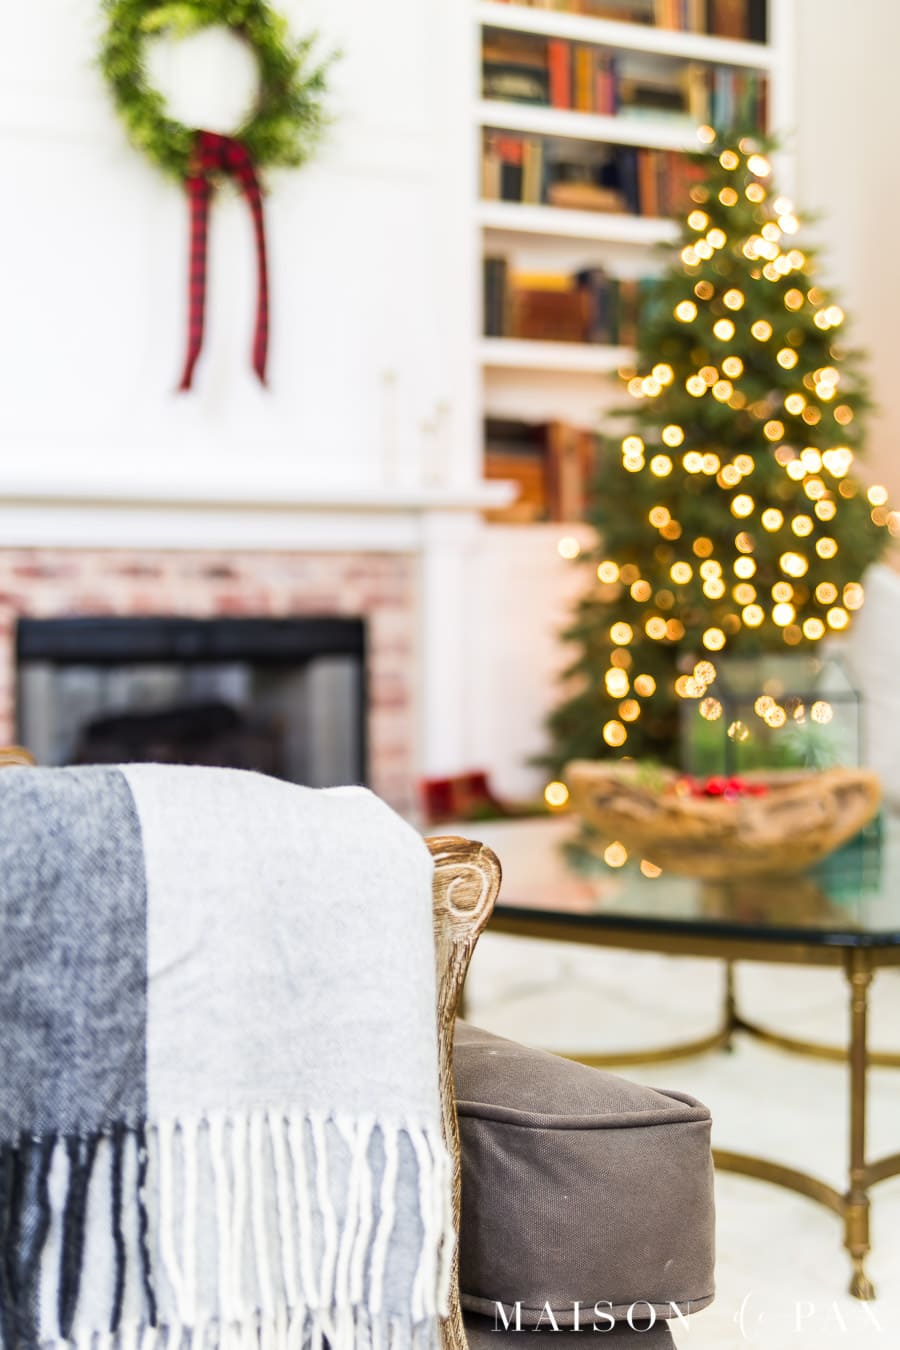 black and white wool plaid throw over arm of gray chair in christmas living room | Maison de Pax